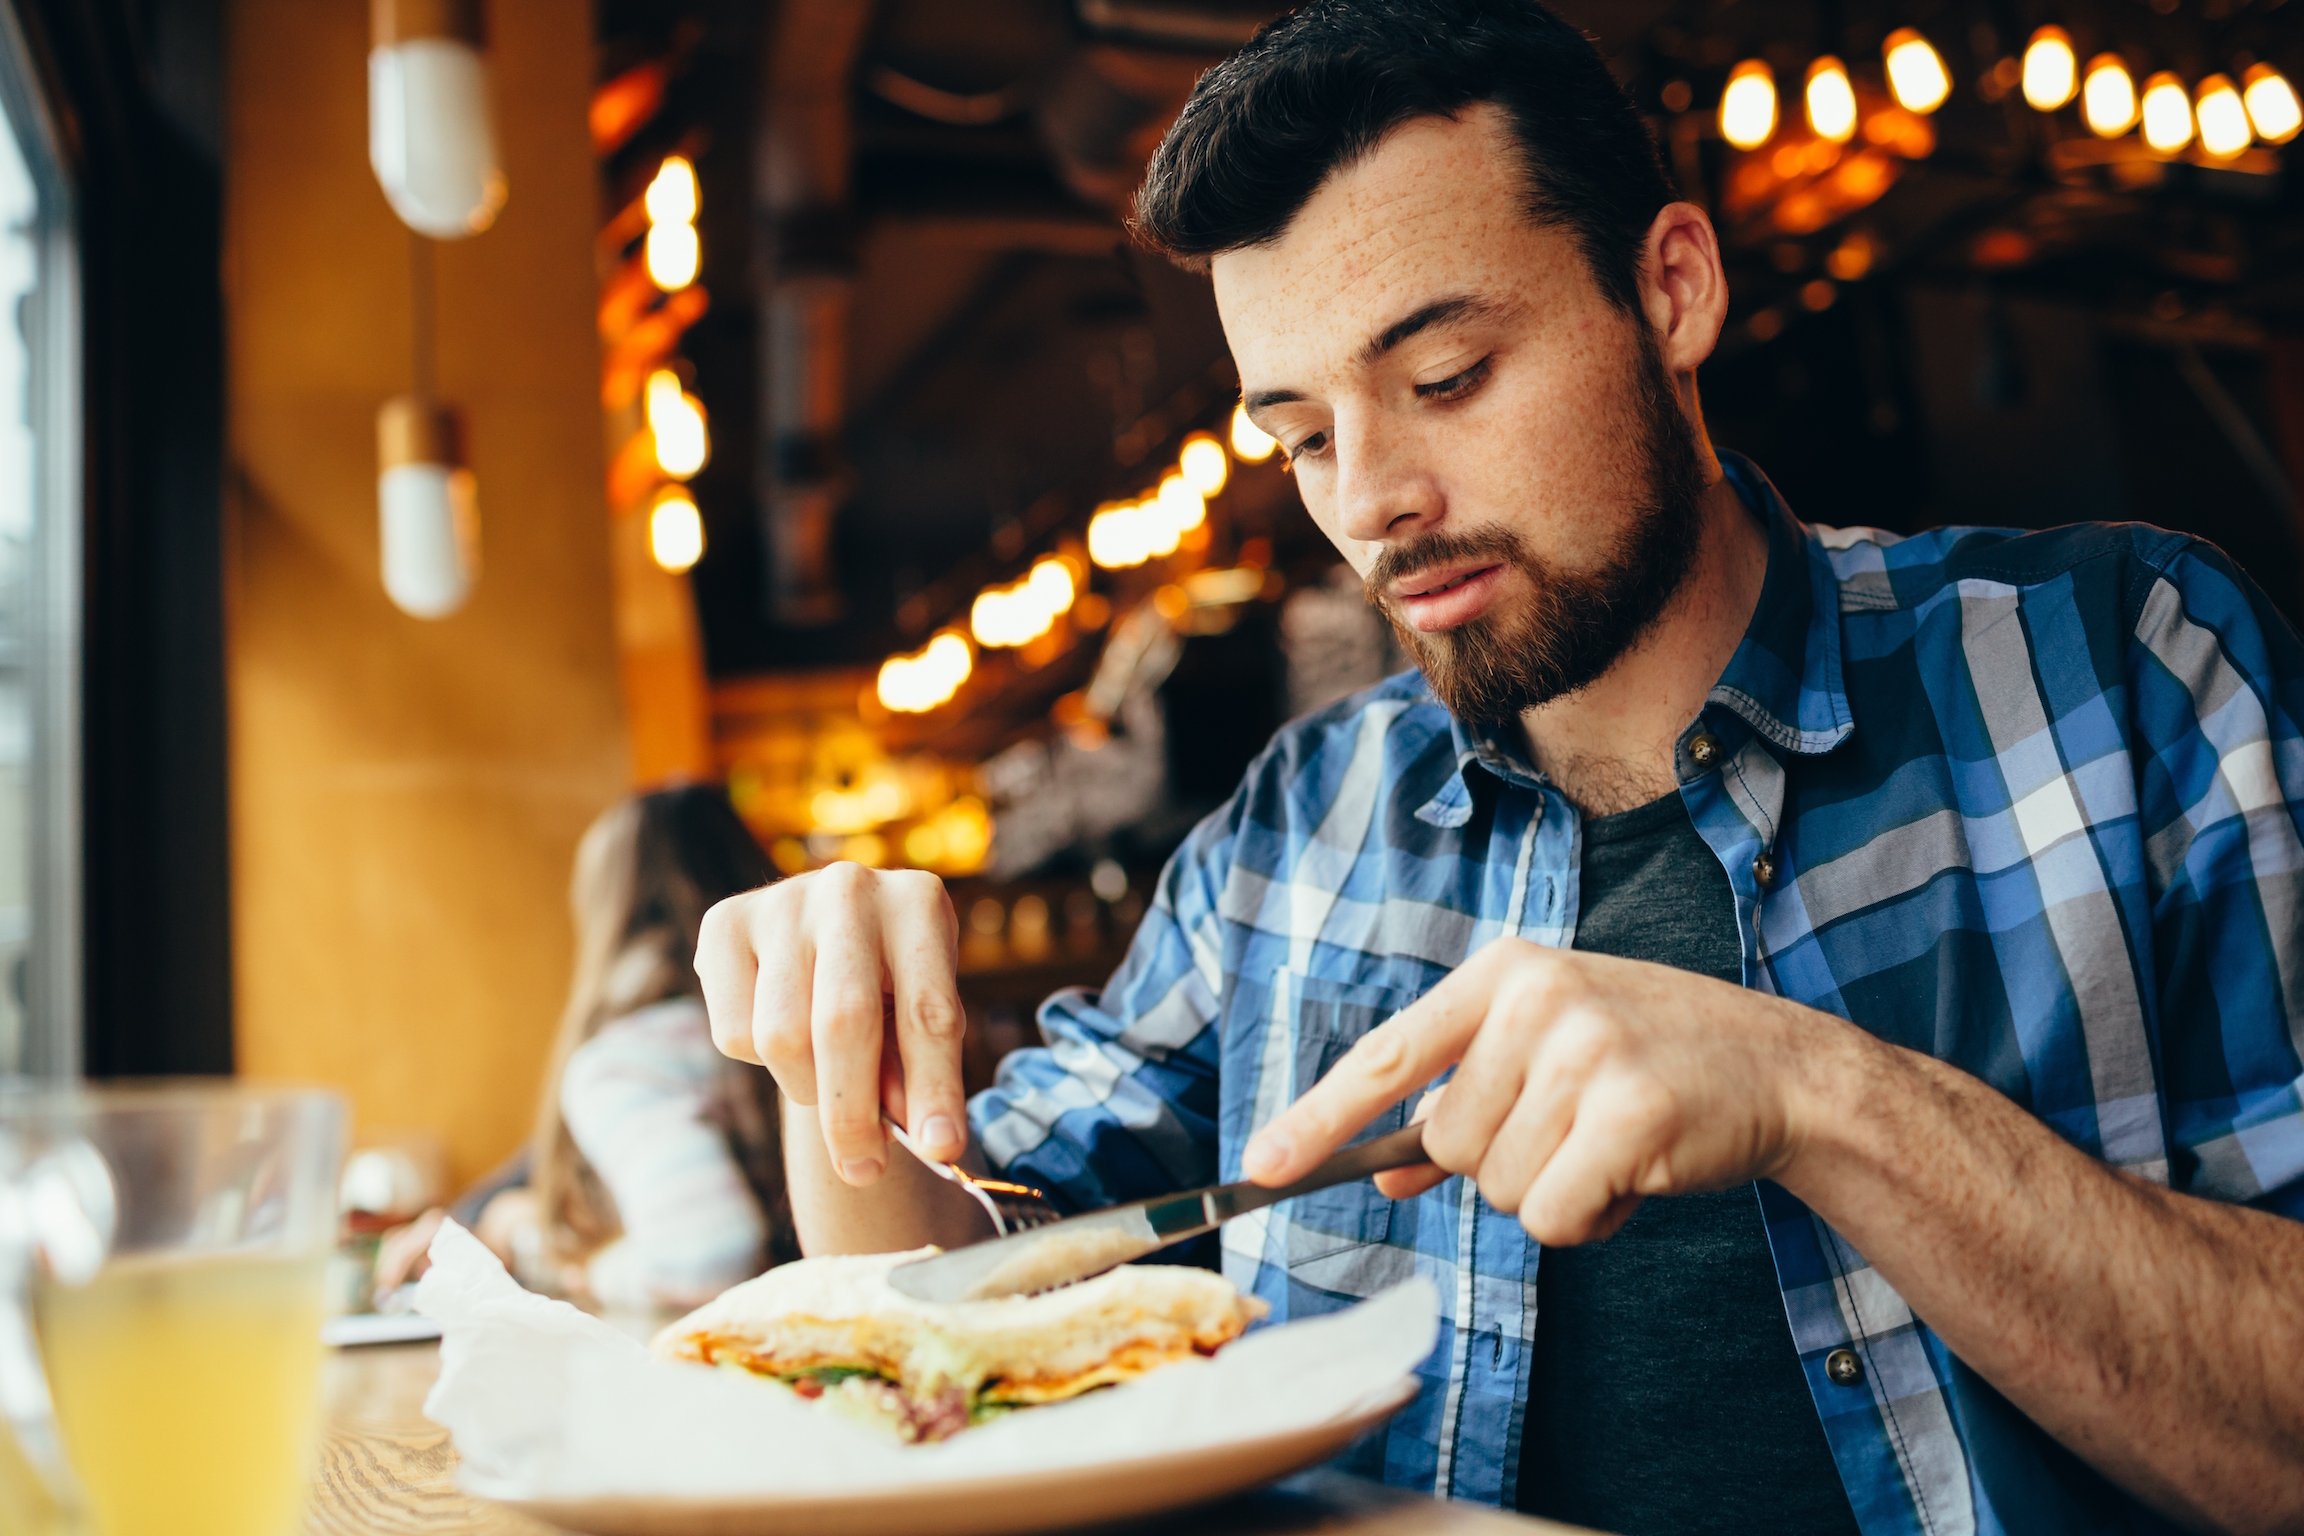 A new study has found that people who eat alone, particularly men, are at an increased risk of developing high cholesterol and obesity.